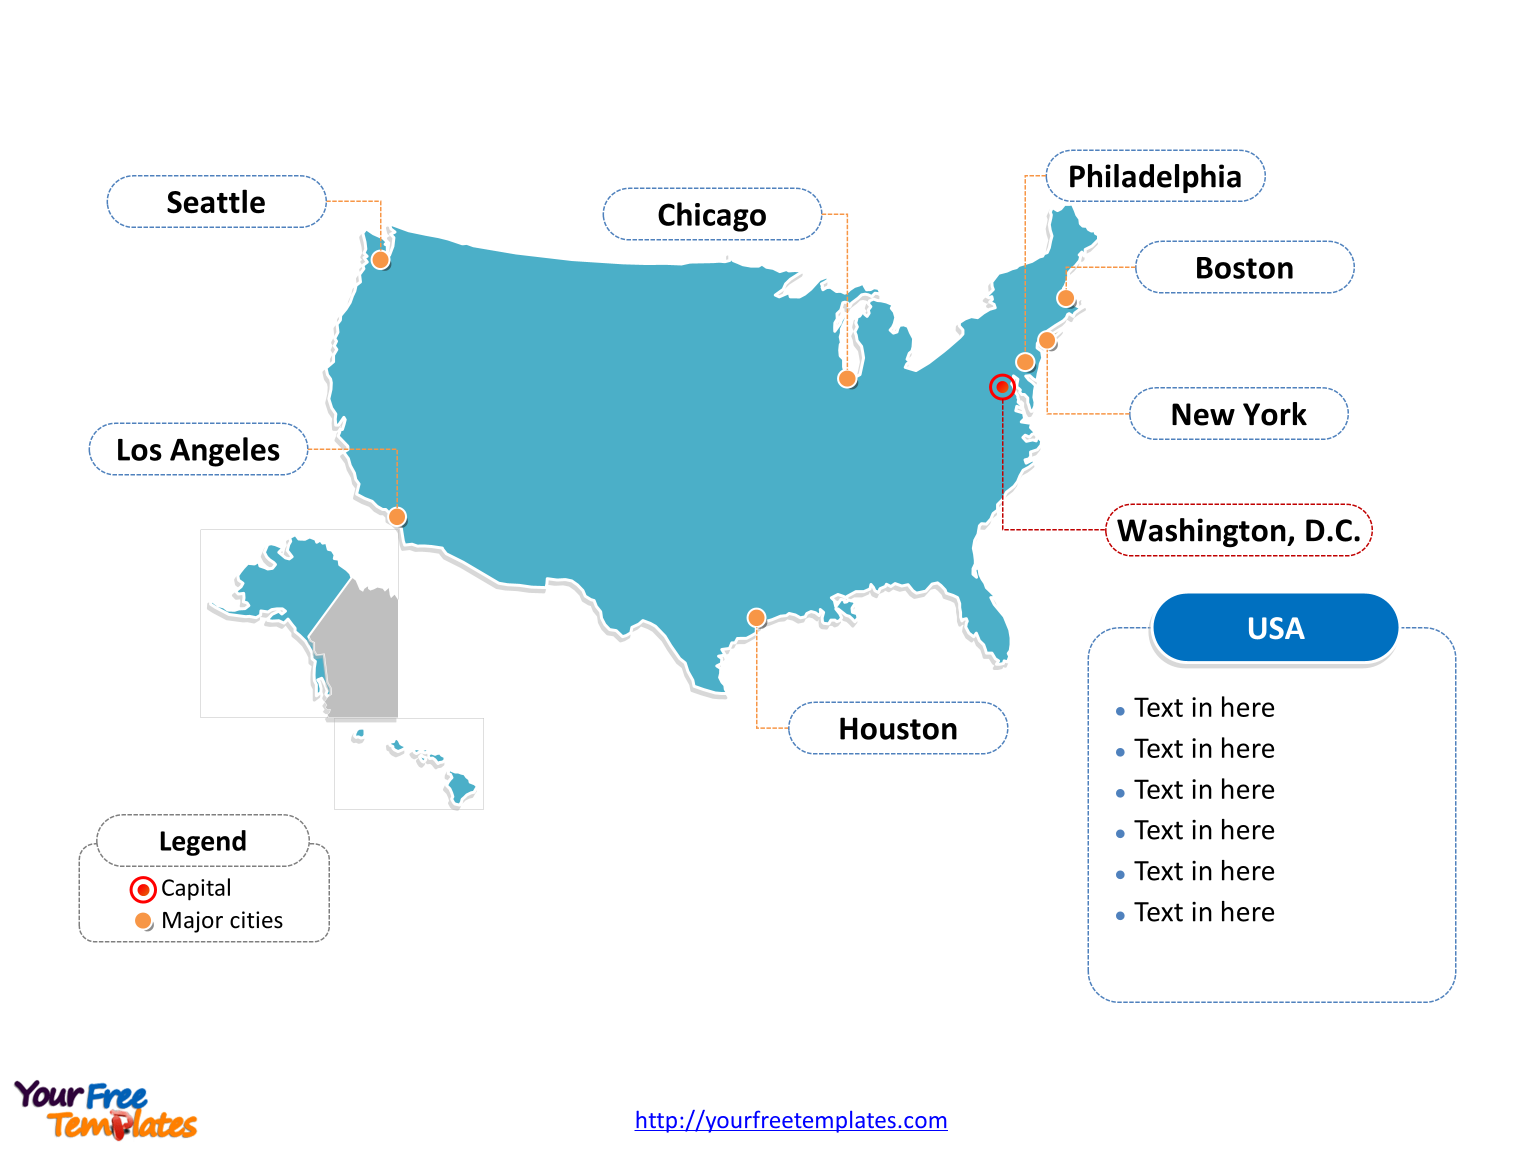 Free USA PowerPoint Map Free PowerPoint Templates - Us map editable in powerpoint